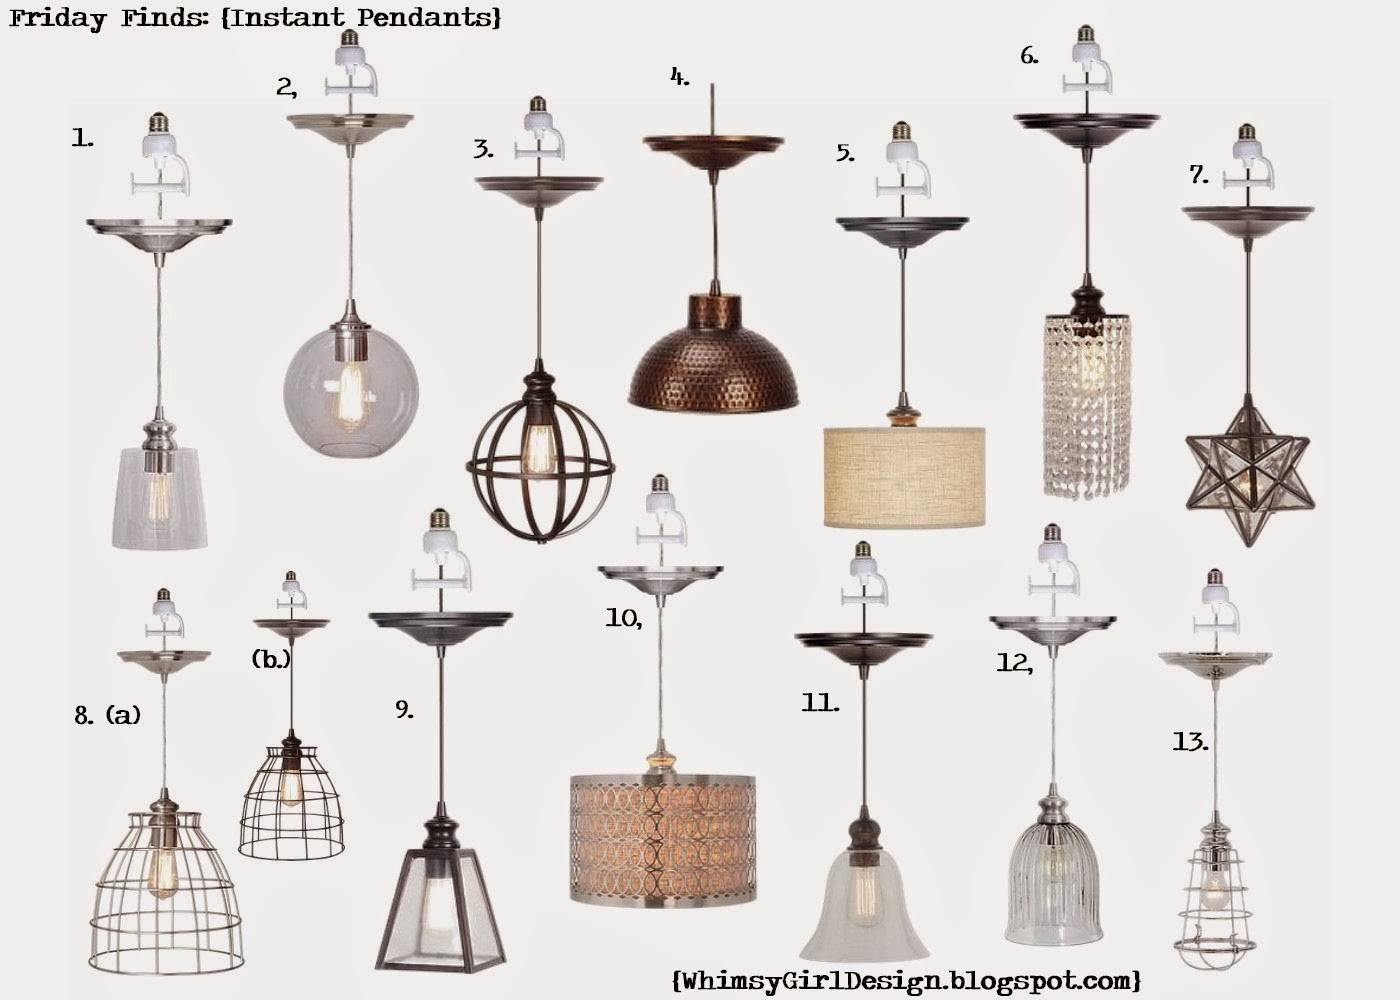 Amazing Of Instant Pendant Light Conversion Kit With Home Decor inside Instant Pendant Lights (Image 1 of 15)